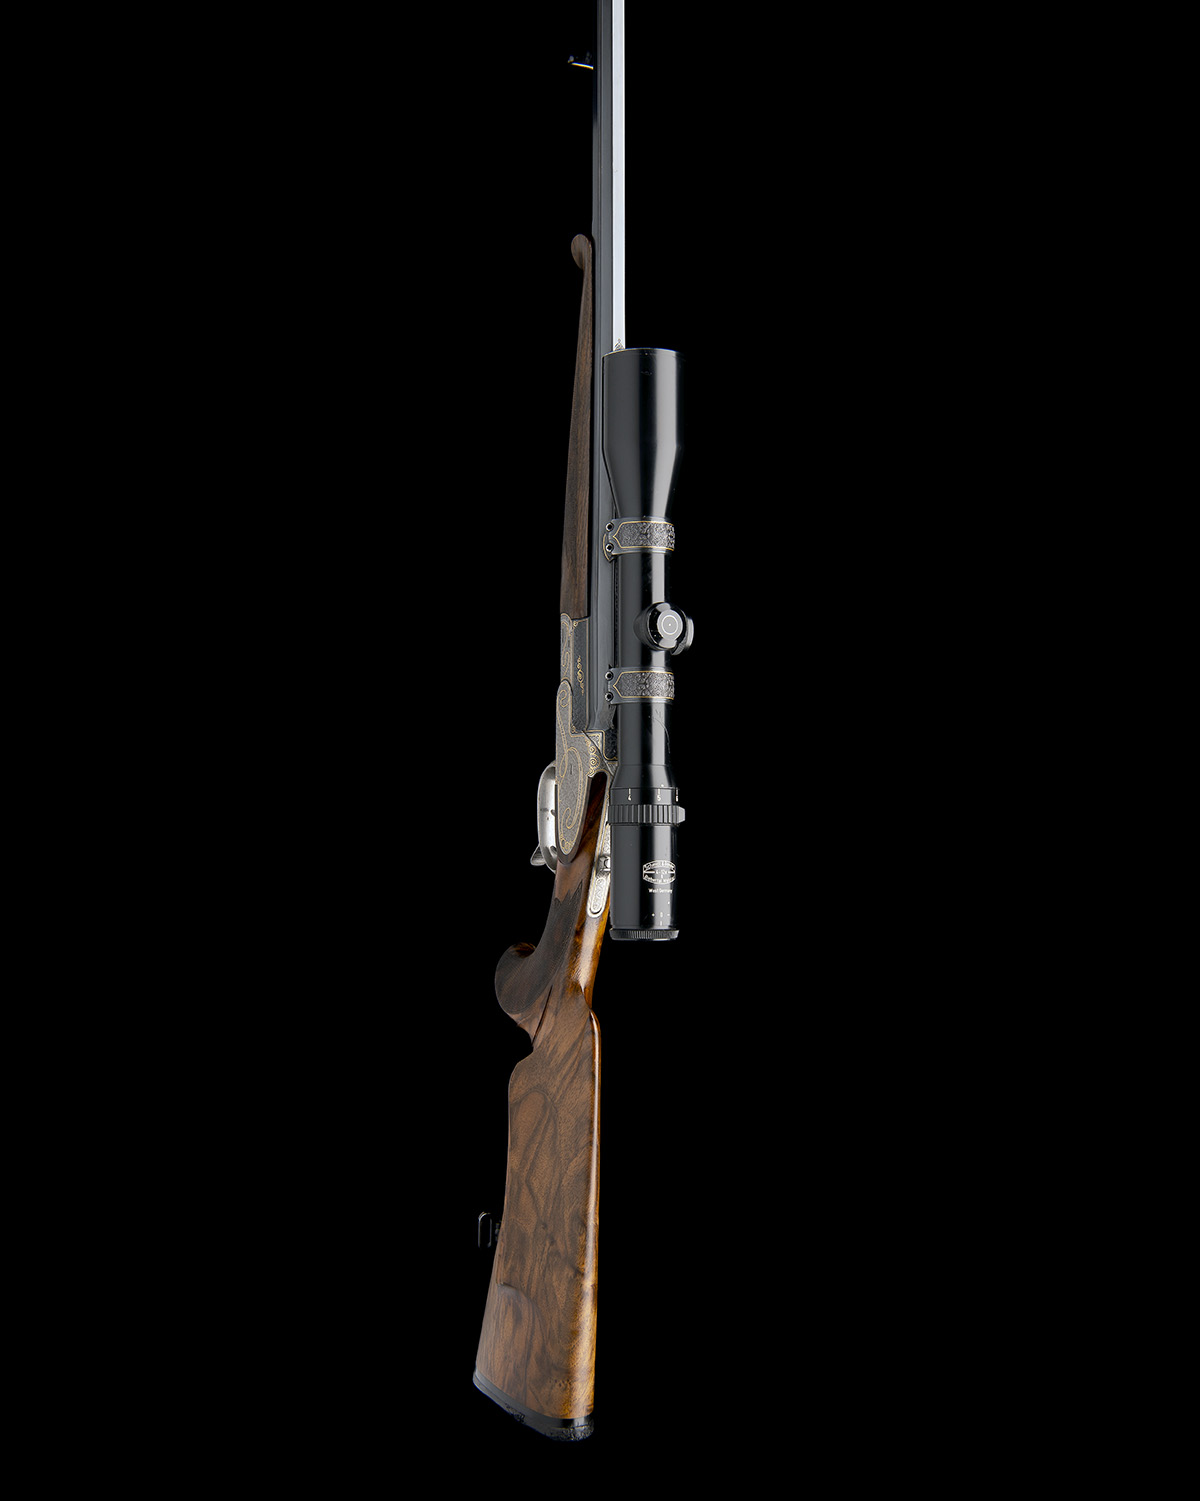 H. SCHEIRING A .300 WIN. MAG. JAEGER PATENT SINGLE-BARRELLED SIDEPLATED PUSH-FORWARD UNDERLEVER - Image 6 of 13